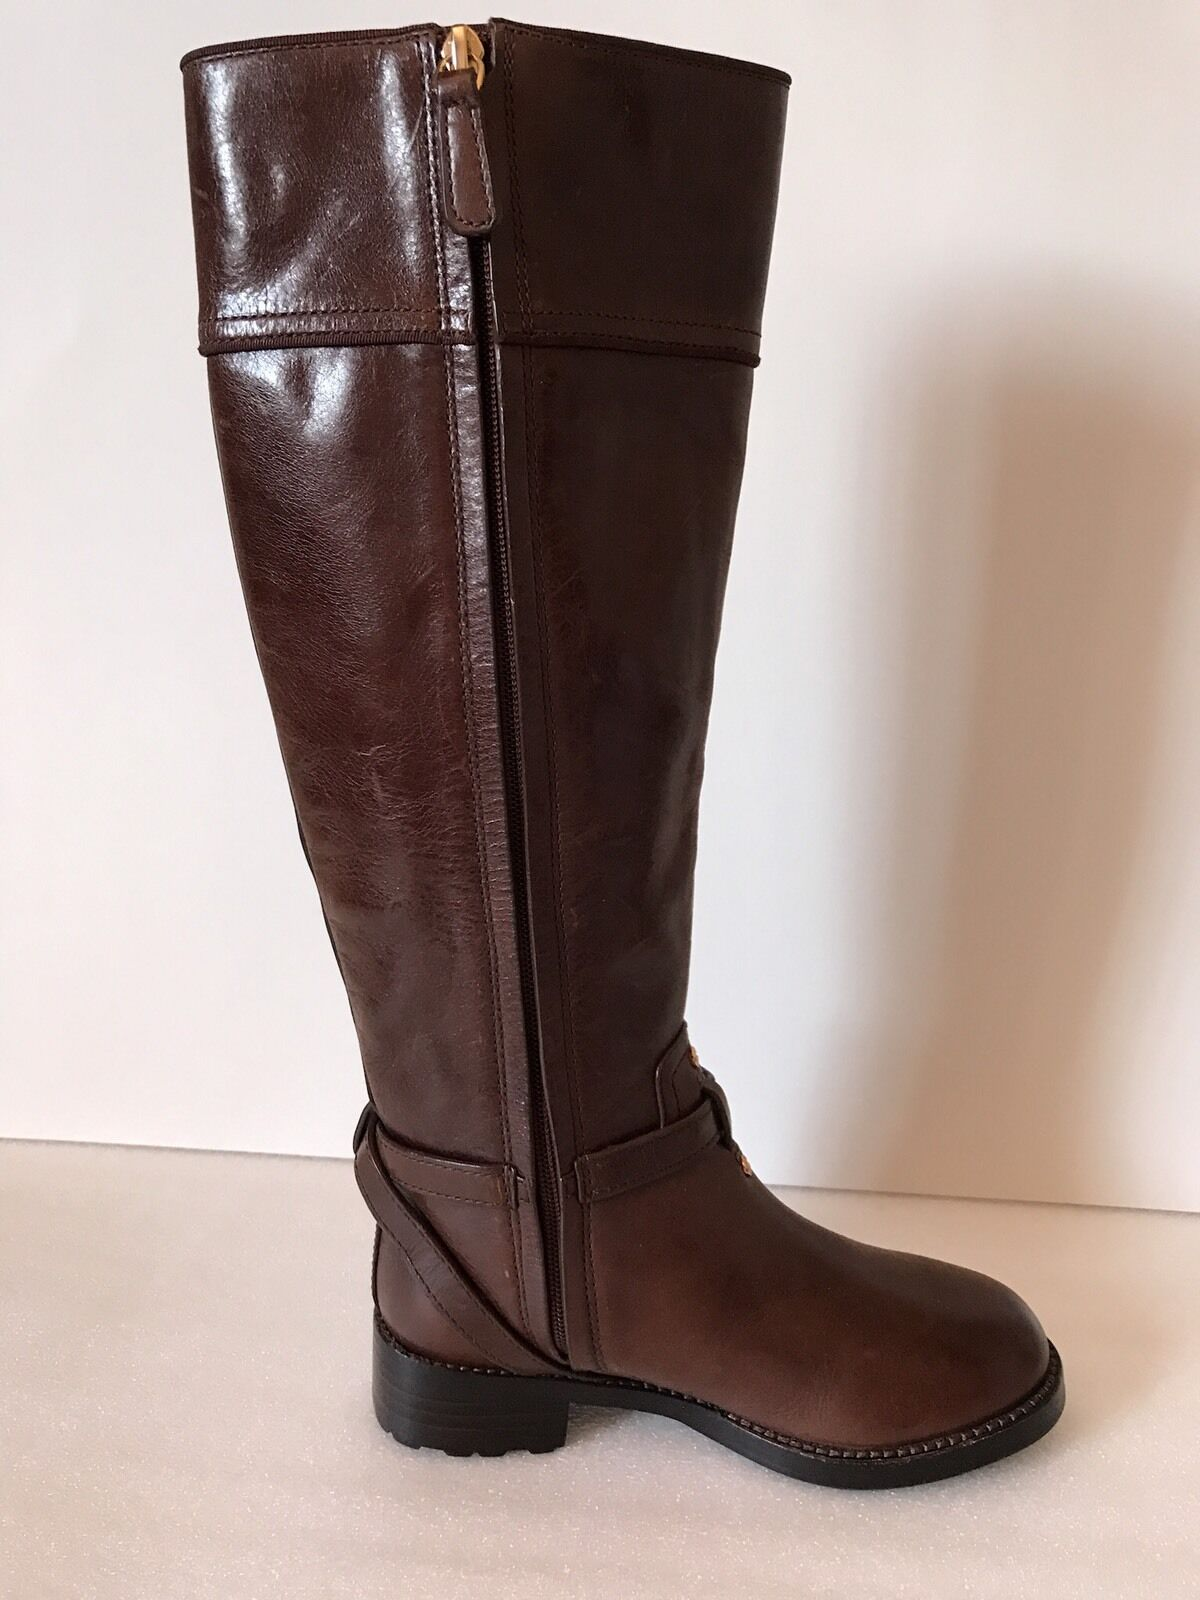 Tory Burch Brown Brown Brown Leather Boots Size 5M e5361e